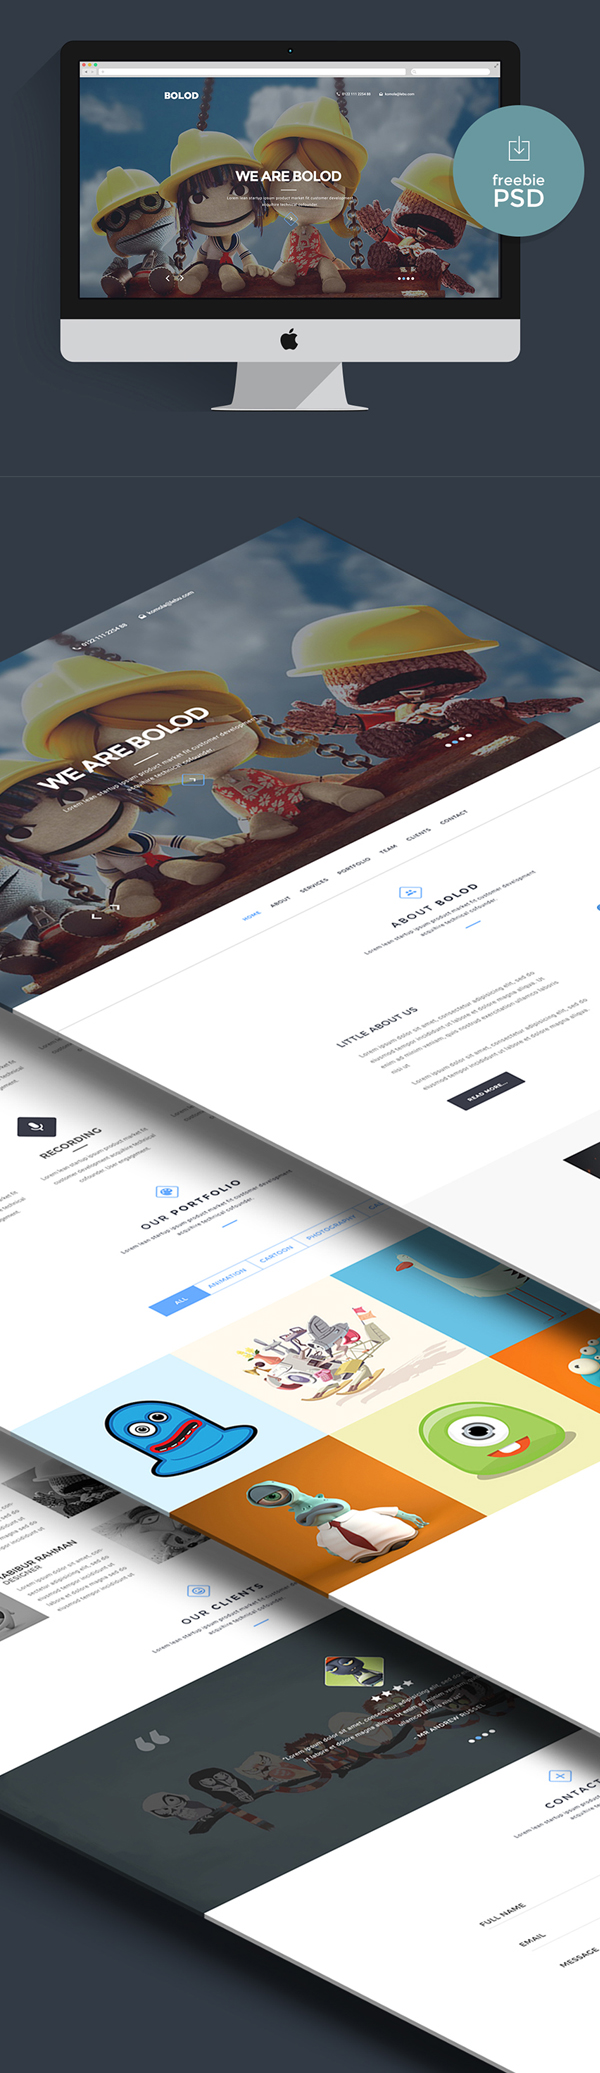 Freebie - Bolod One Page PSD Template